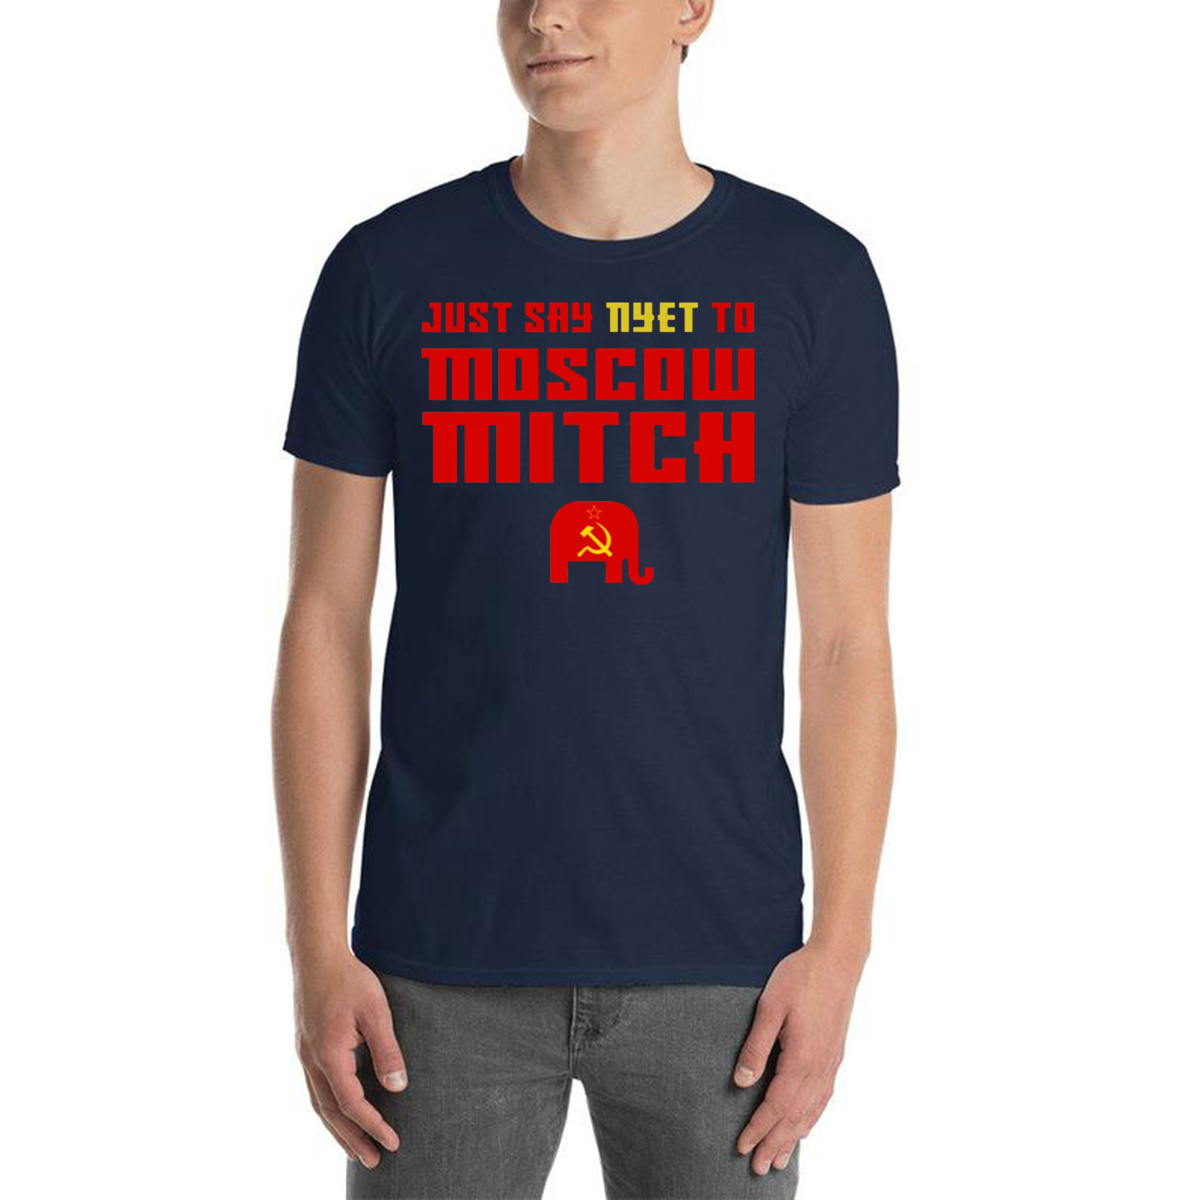 #MoscowMitch T Shirt , Just Say Nyet To Moscow Mitch Shirt - Moscow Mitch T-Shirt